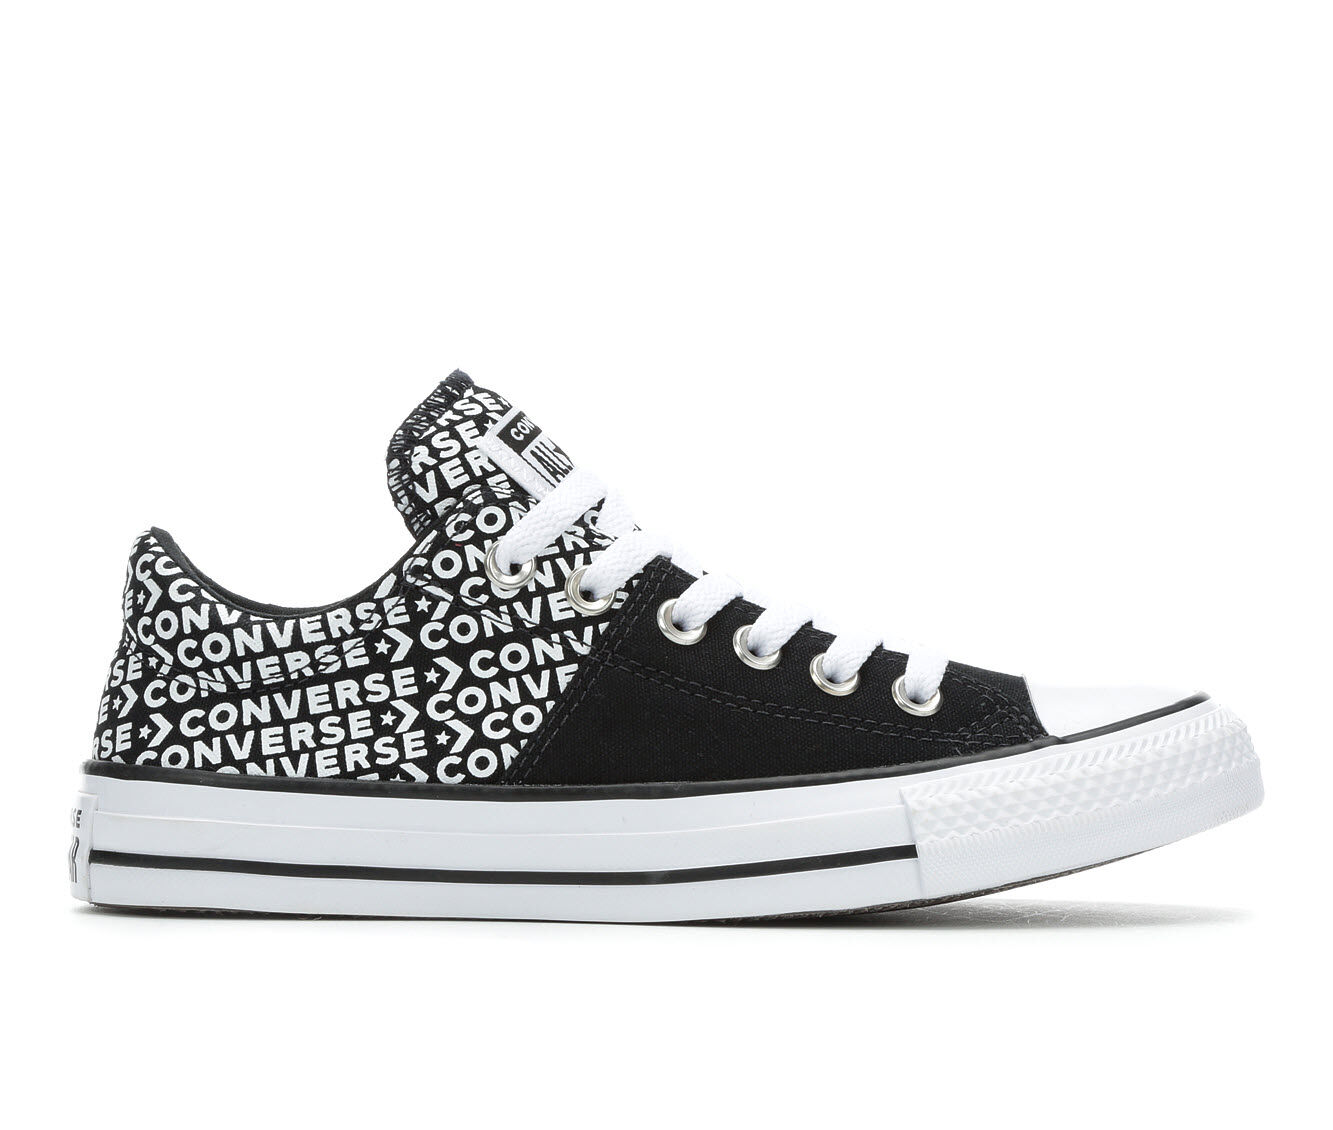 Women's Converse Chuck Taylor All Star Madison Wordmark Sneakers Black/White